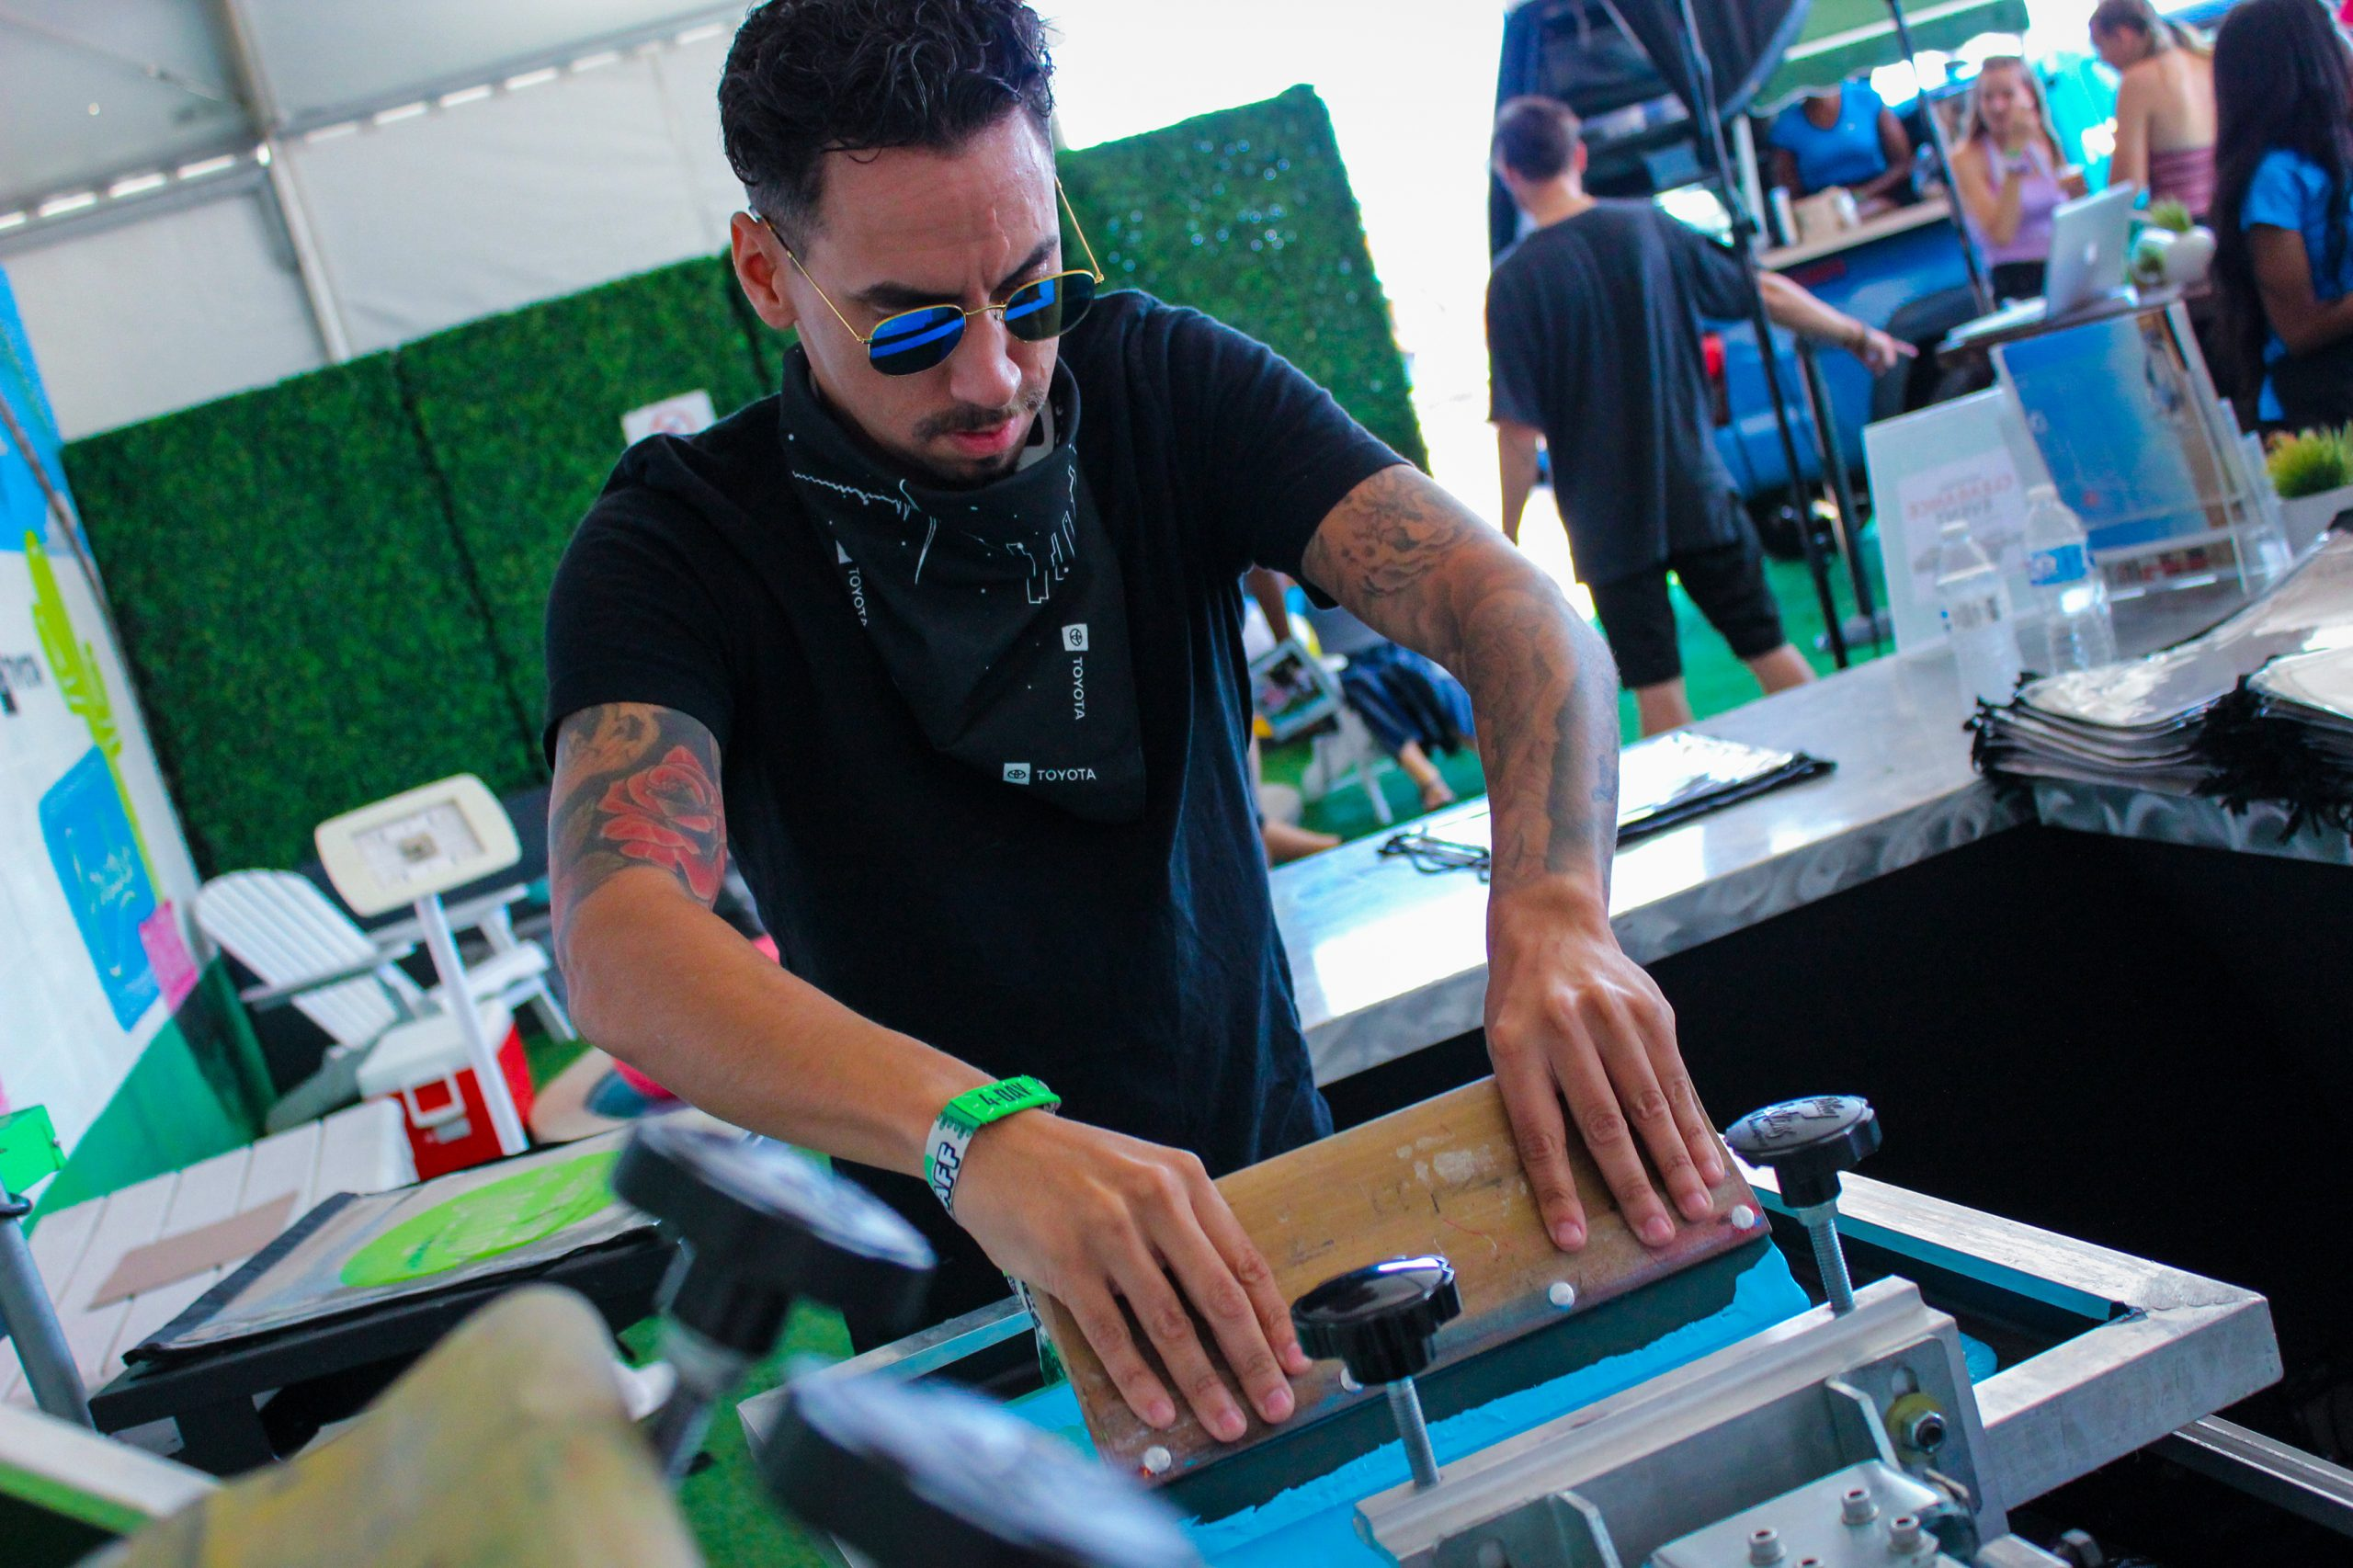 Los Angeles Company Hits Big With Live Screen Printing … to the Tune of 7,000 Shirts a Day